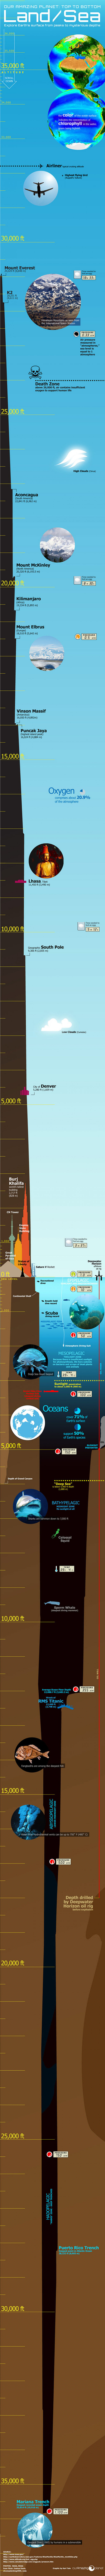 Tallest Mountain to Deepest Ocean Trench